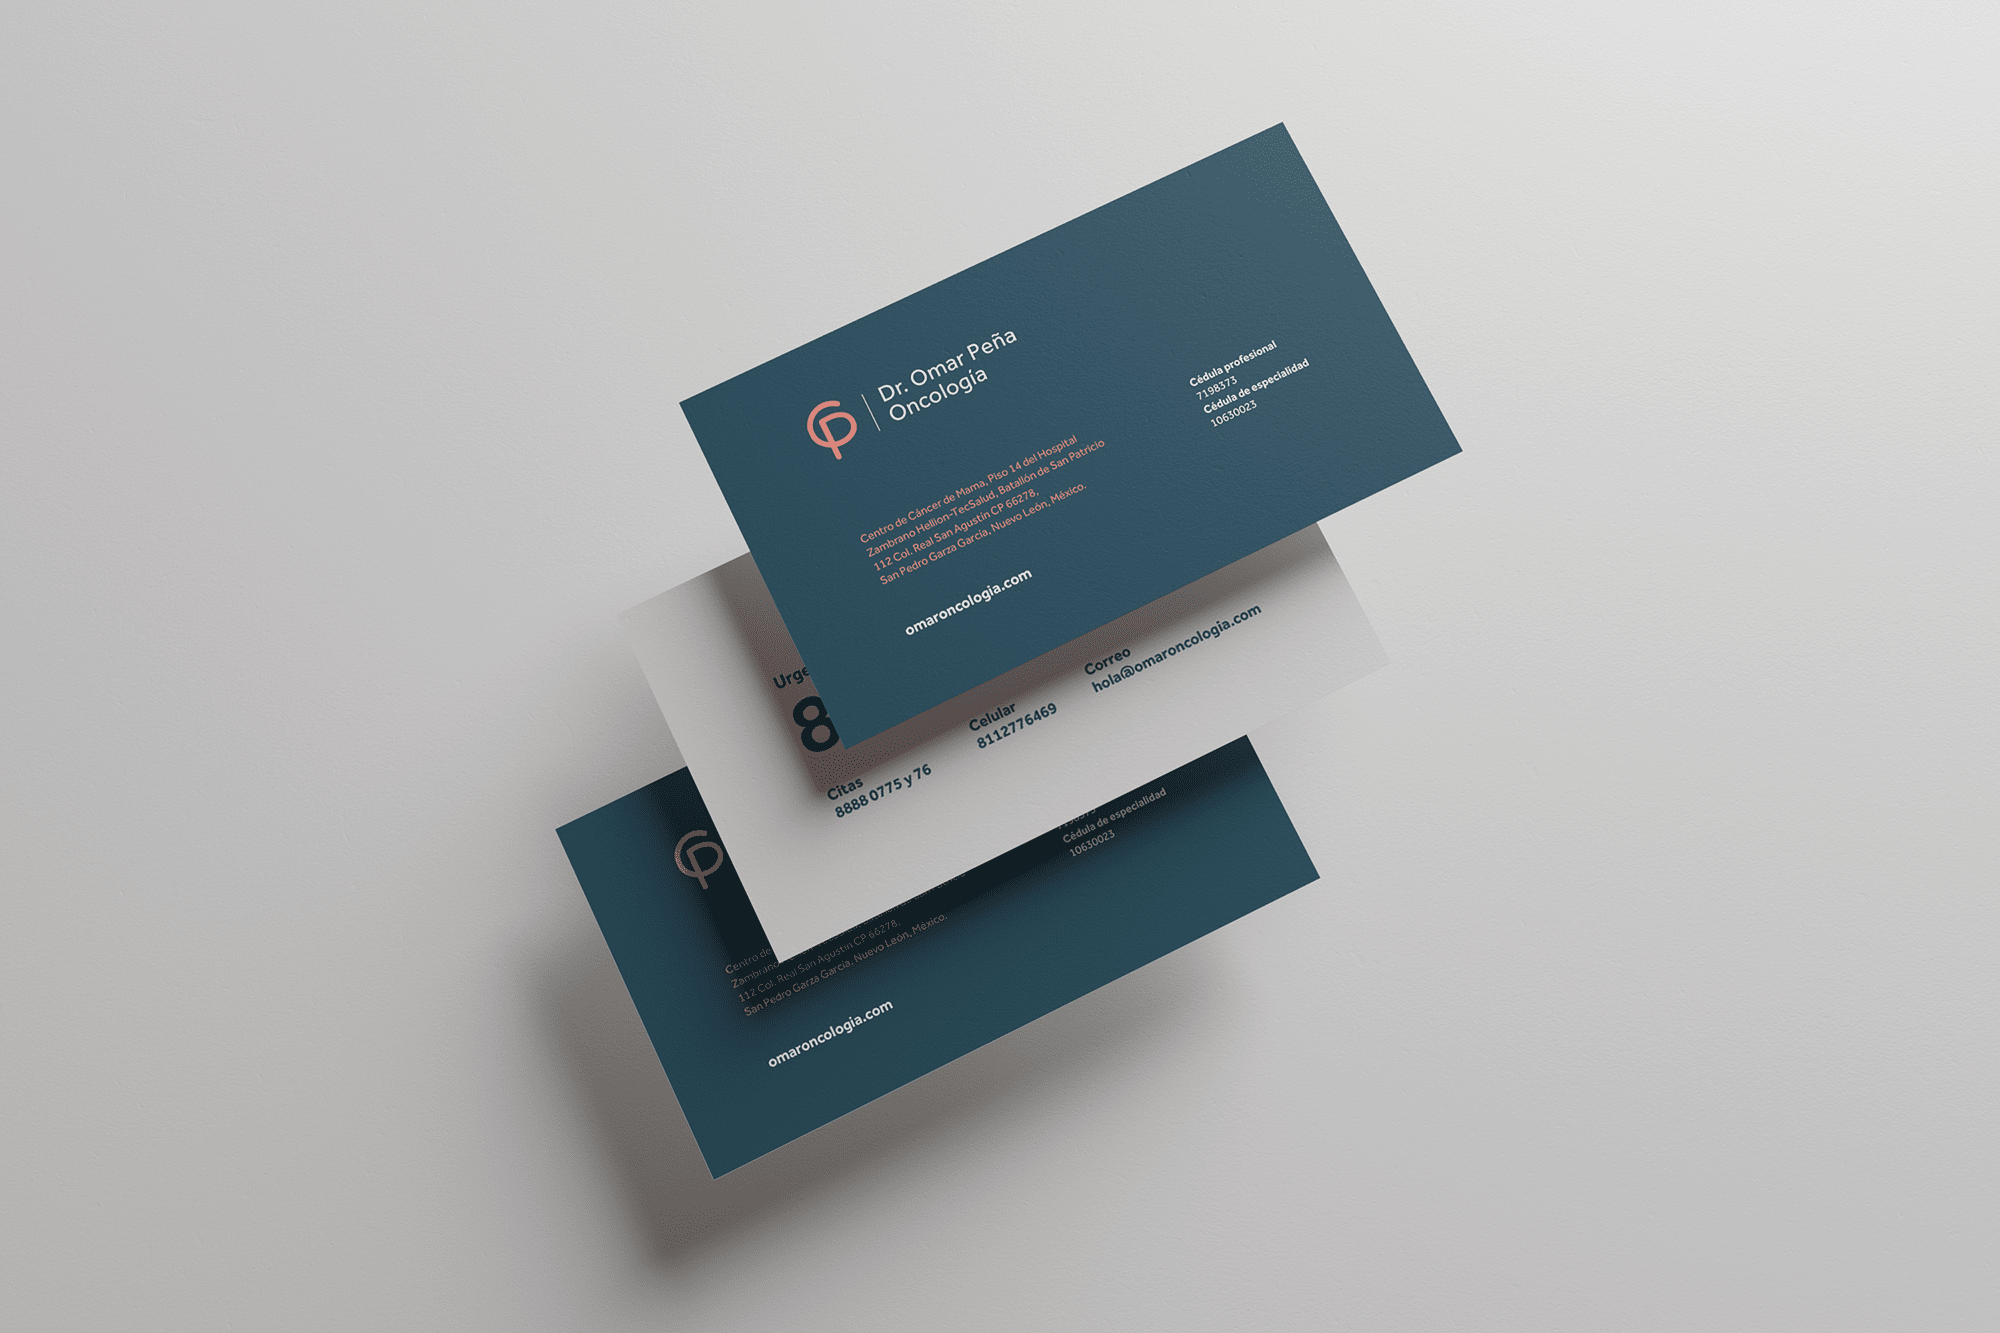 business-cards-omar-oncologia-yoenpaperland